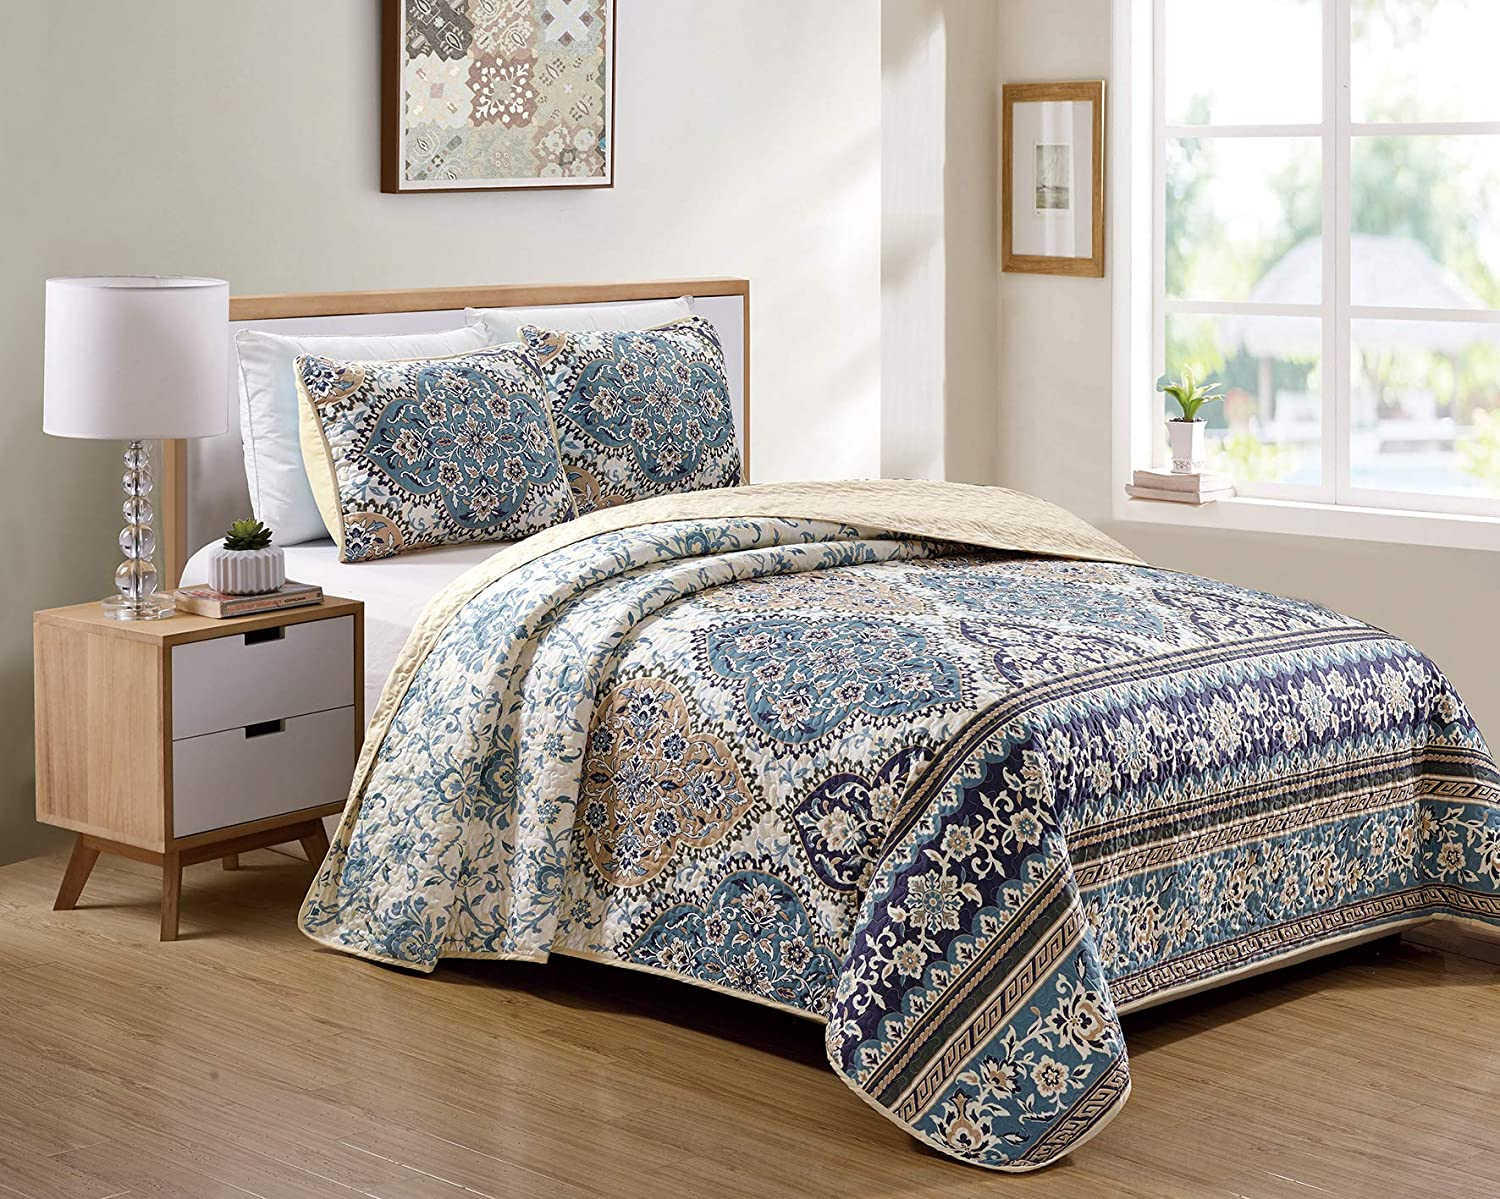 Better Home Style 3 Piece Blue Taupe Beige Navy Floral Luxury Lush Soft Flowers Printed Design Quilt Coverlet Bedspread Oversized Bed Cover Set # 12740 (King/Cal-King)